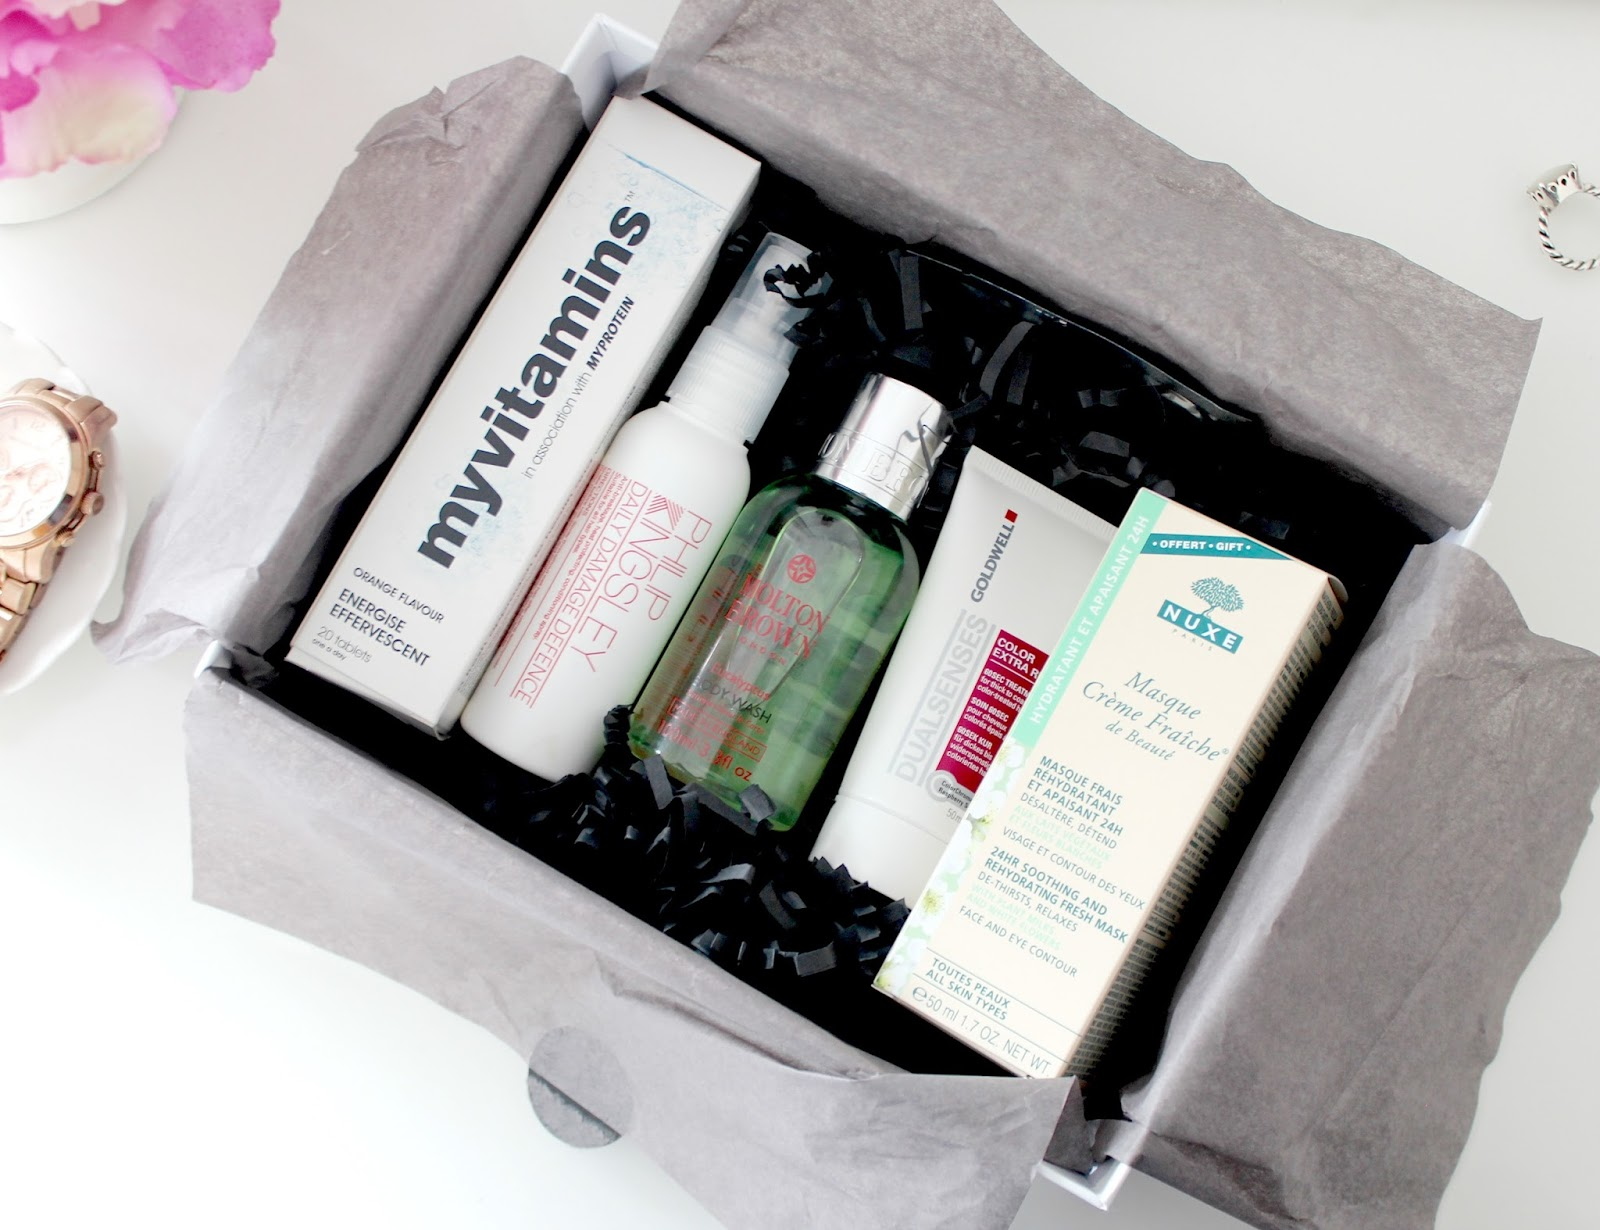 Look Fantastic Beauty Box, Look Fantastic January Beauty Box Review, Look Fantastic Beauty Box Review